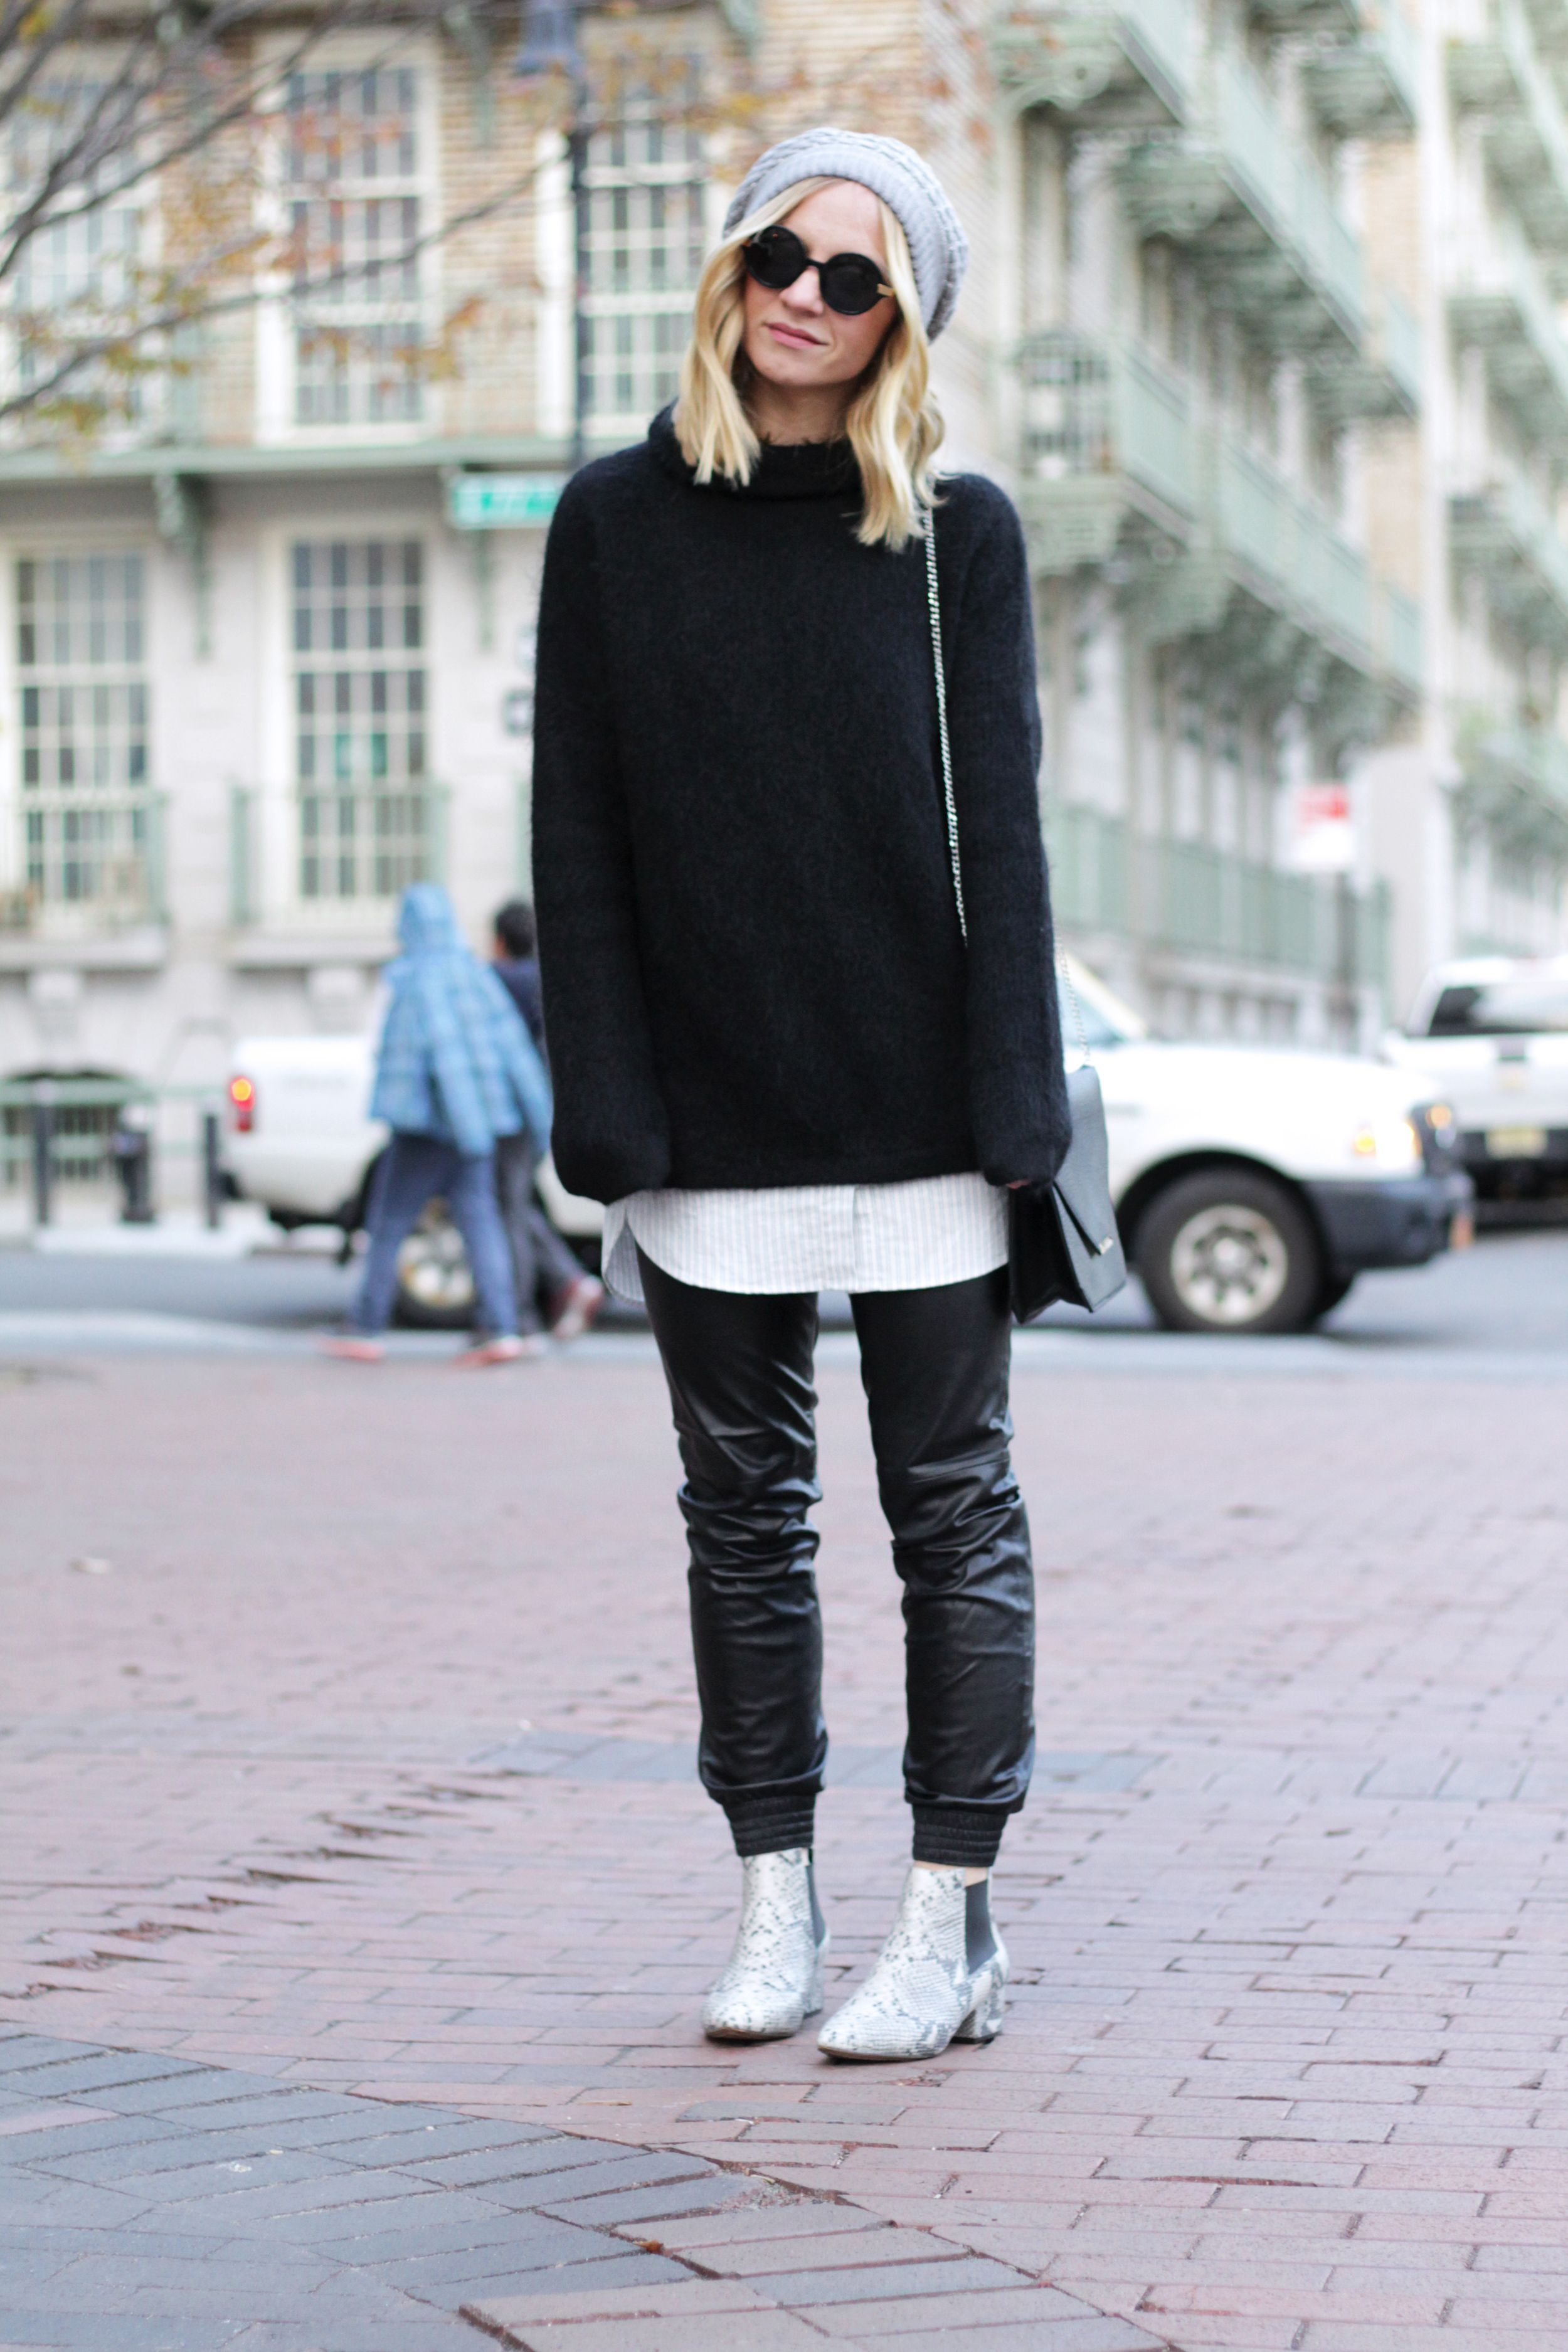 layers, outfit layering, oversized sweater — I Think, Therefore I Dress